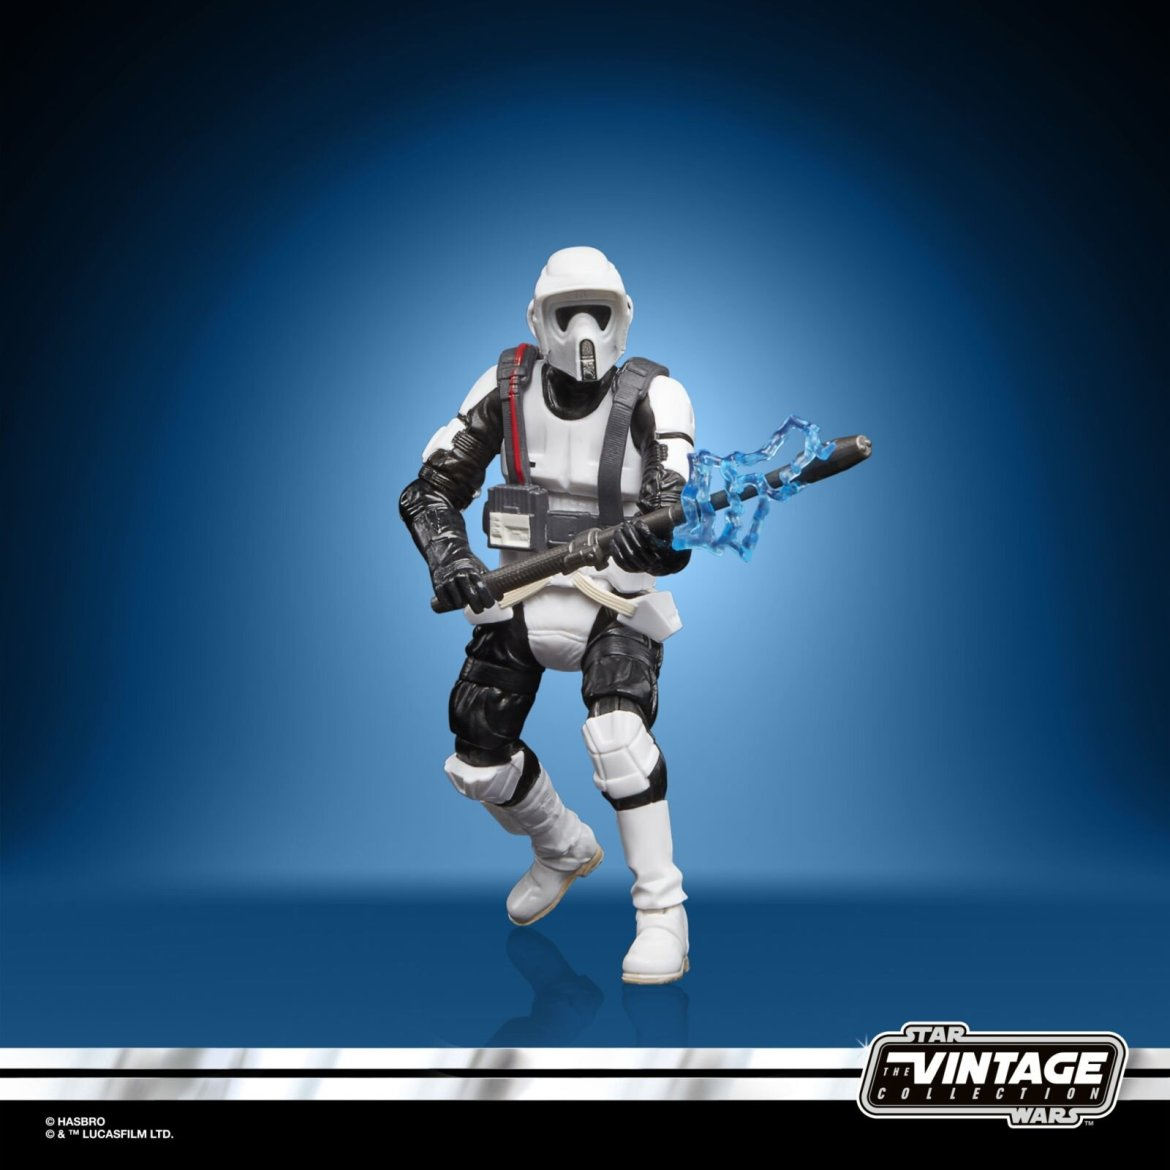 STAR WARS THE VINTAGE COLLECTION GAMING GREATS 3.75-INCH SHOCK SCOUT TROOPER Figure (6).jpg